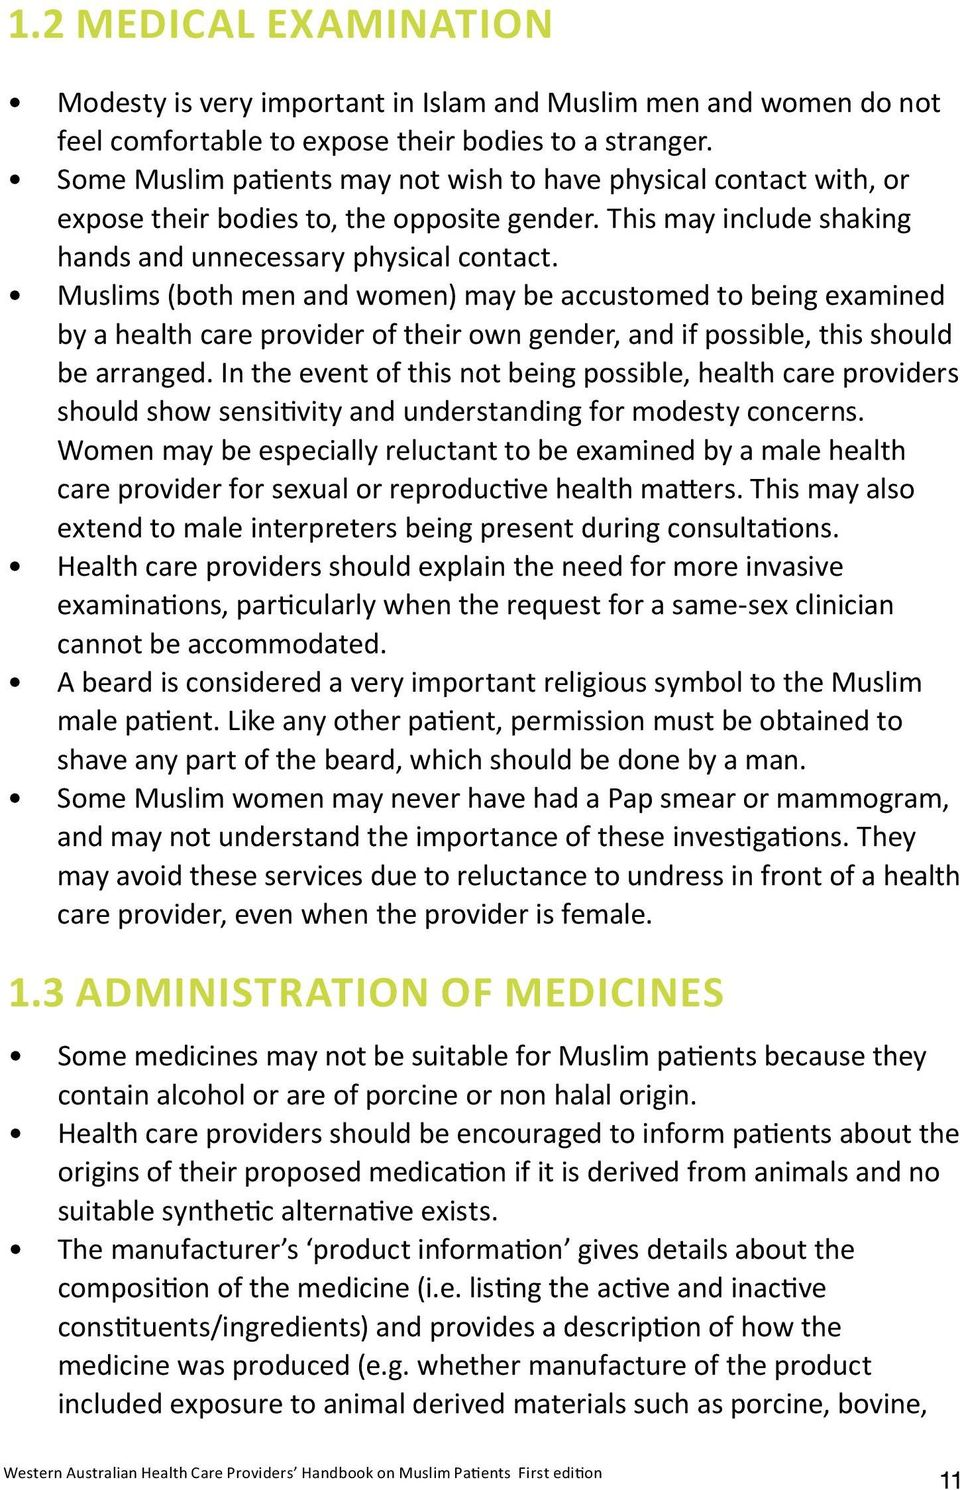 Muslims (both men and women) may be accustomed to being examined by a health care provider of their own gender, and if possible, this should be arranged.